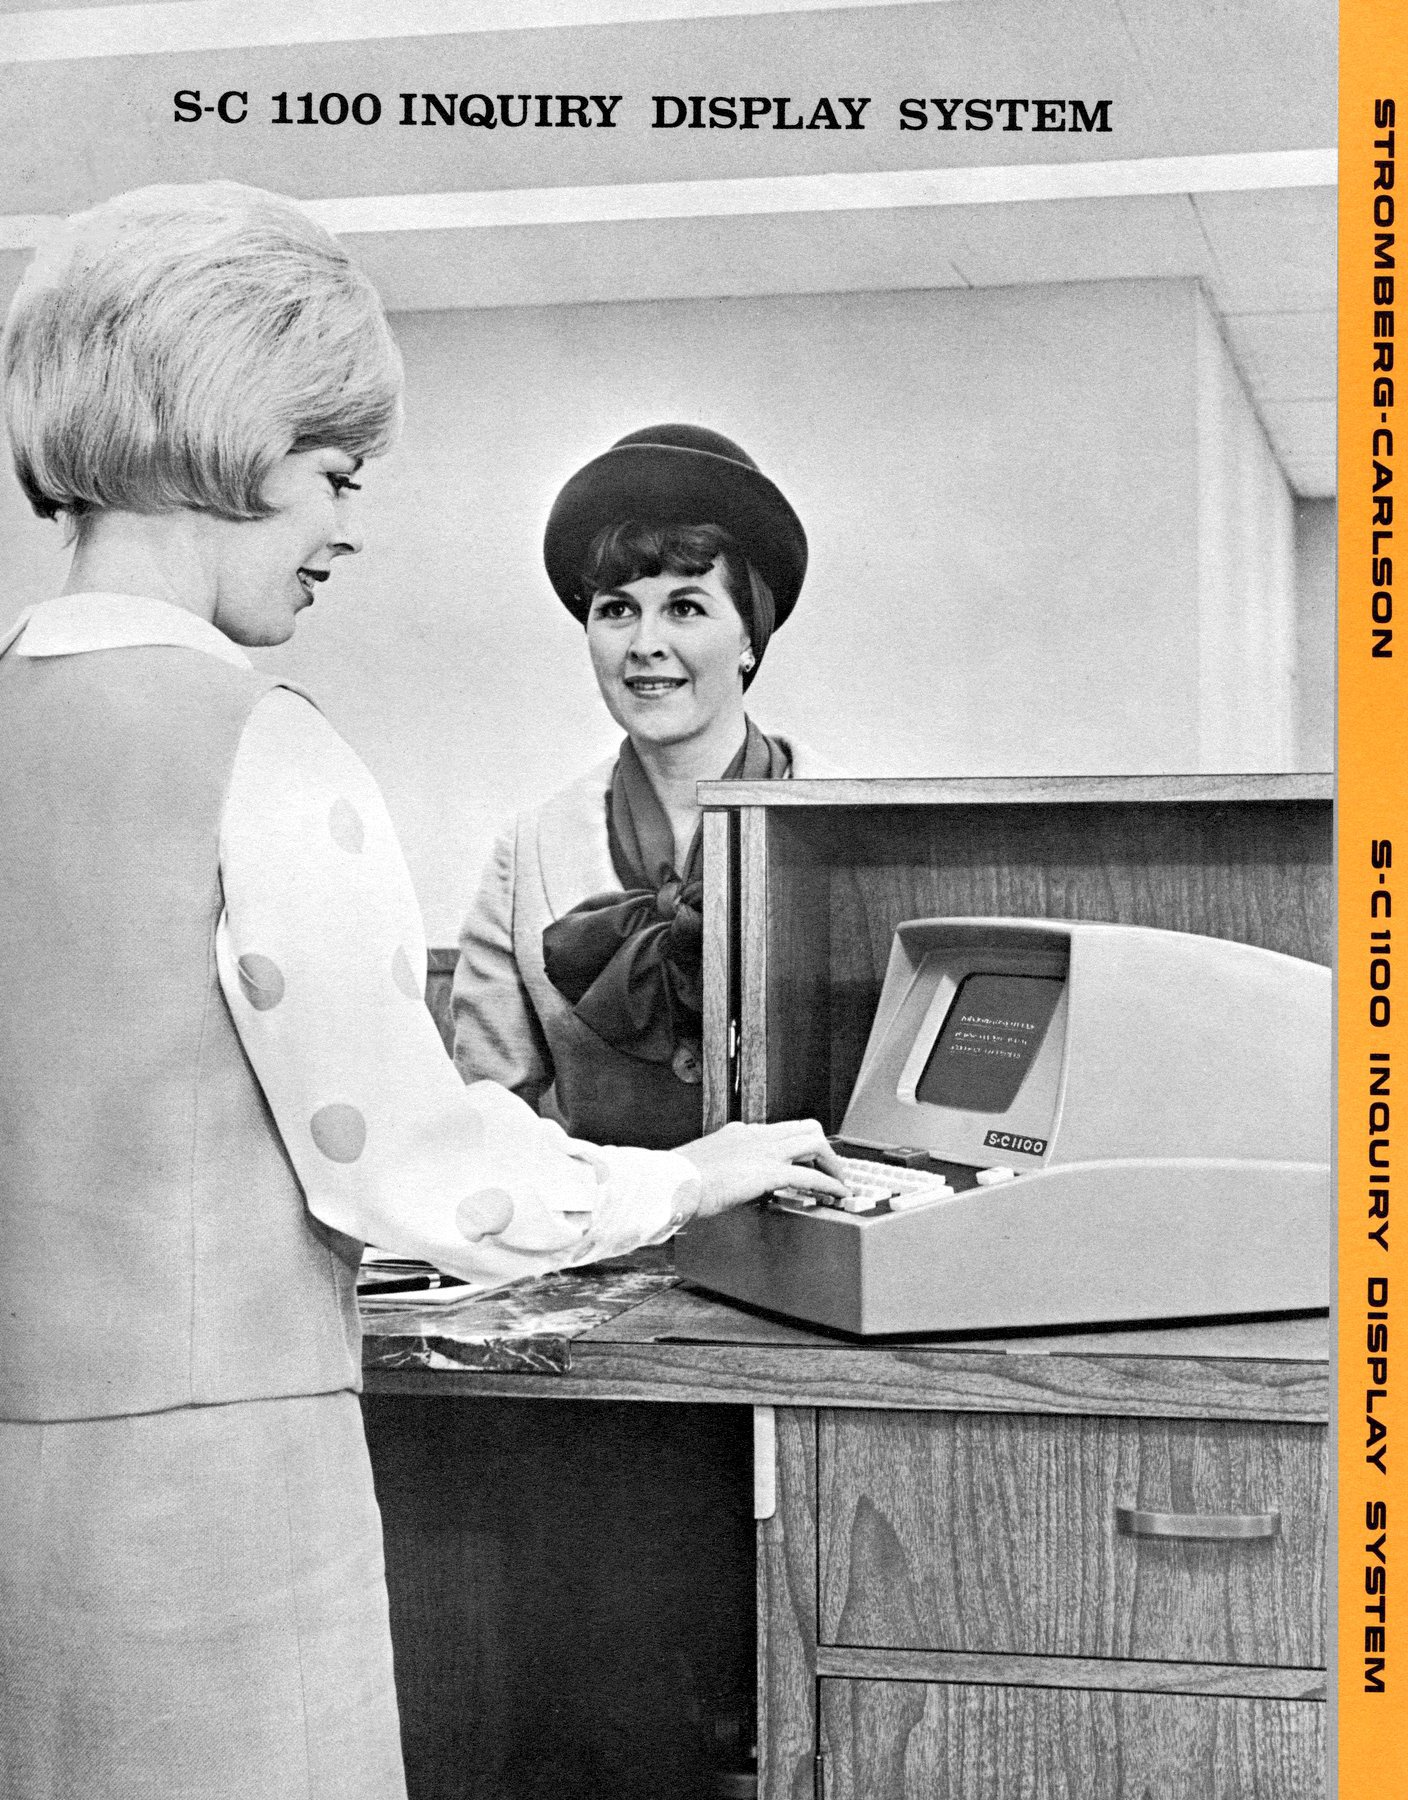 Computer at a bank - Teller in the 1960s